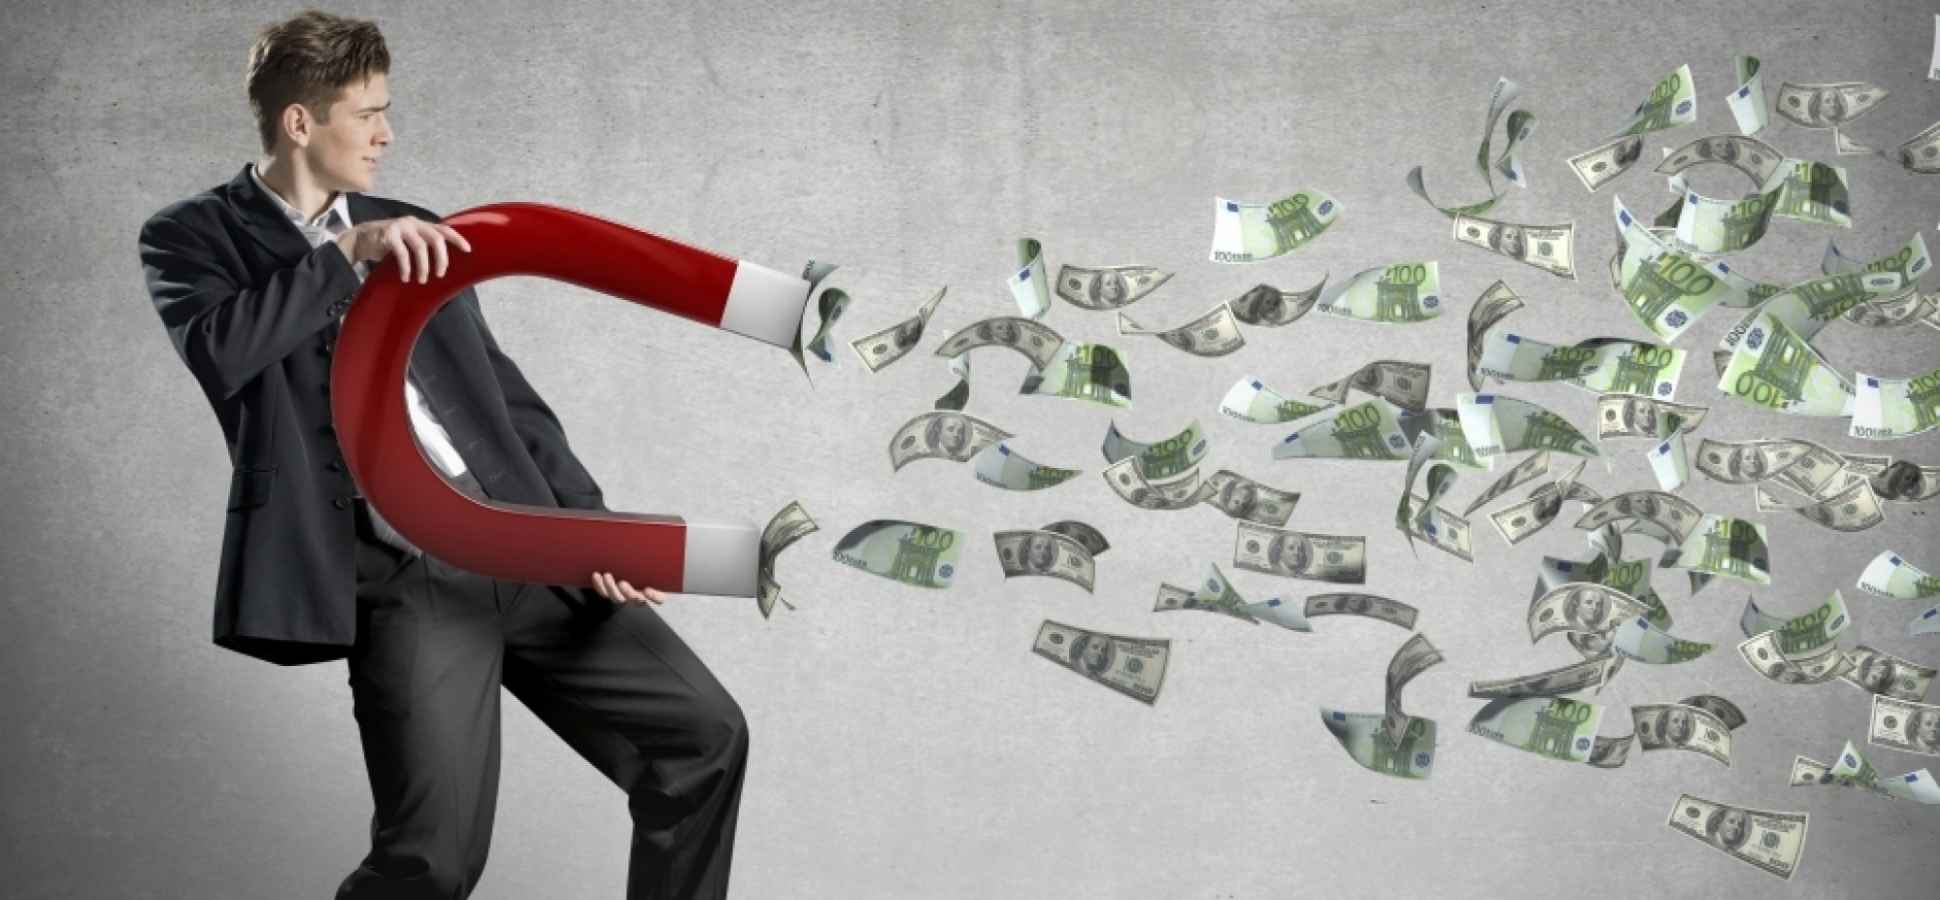 5 Ways to Talk With Your Boss About Making More Money   Inc com